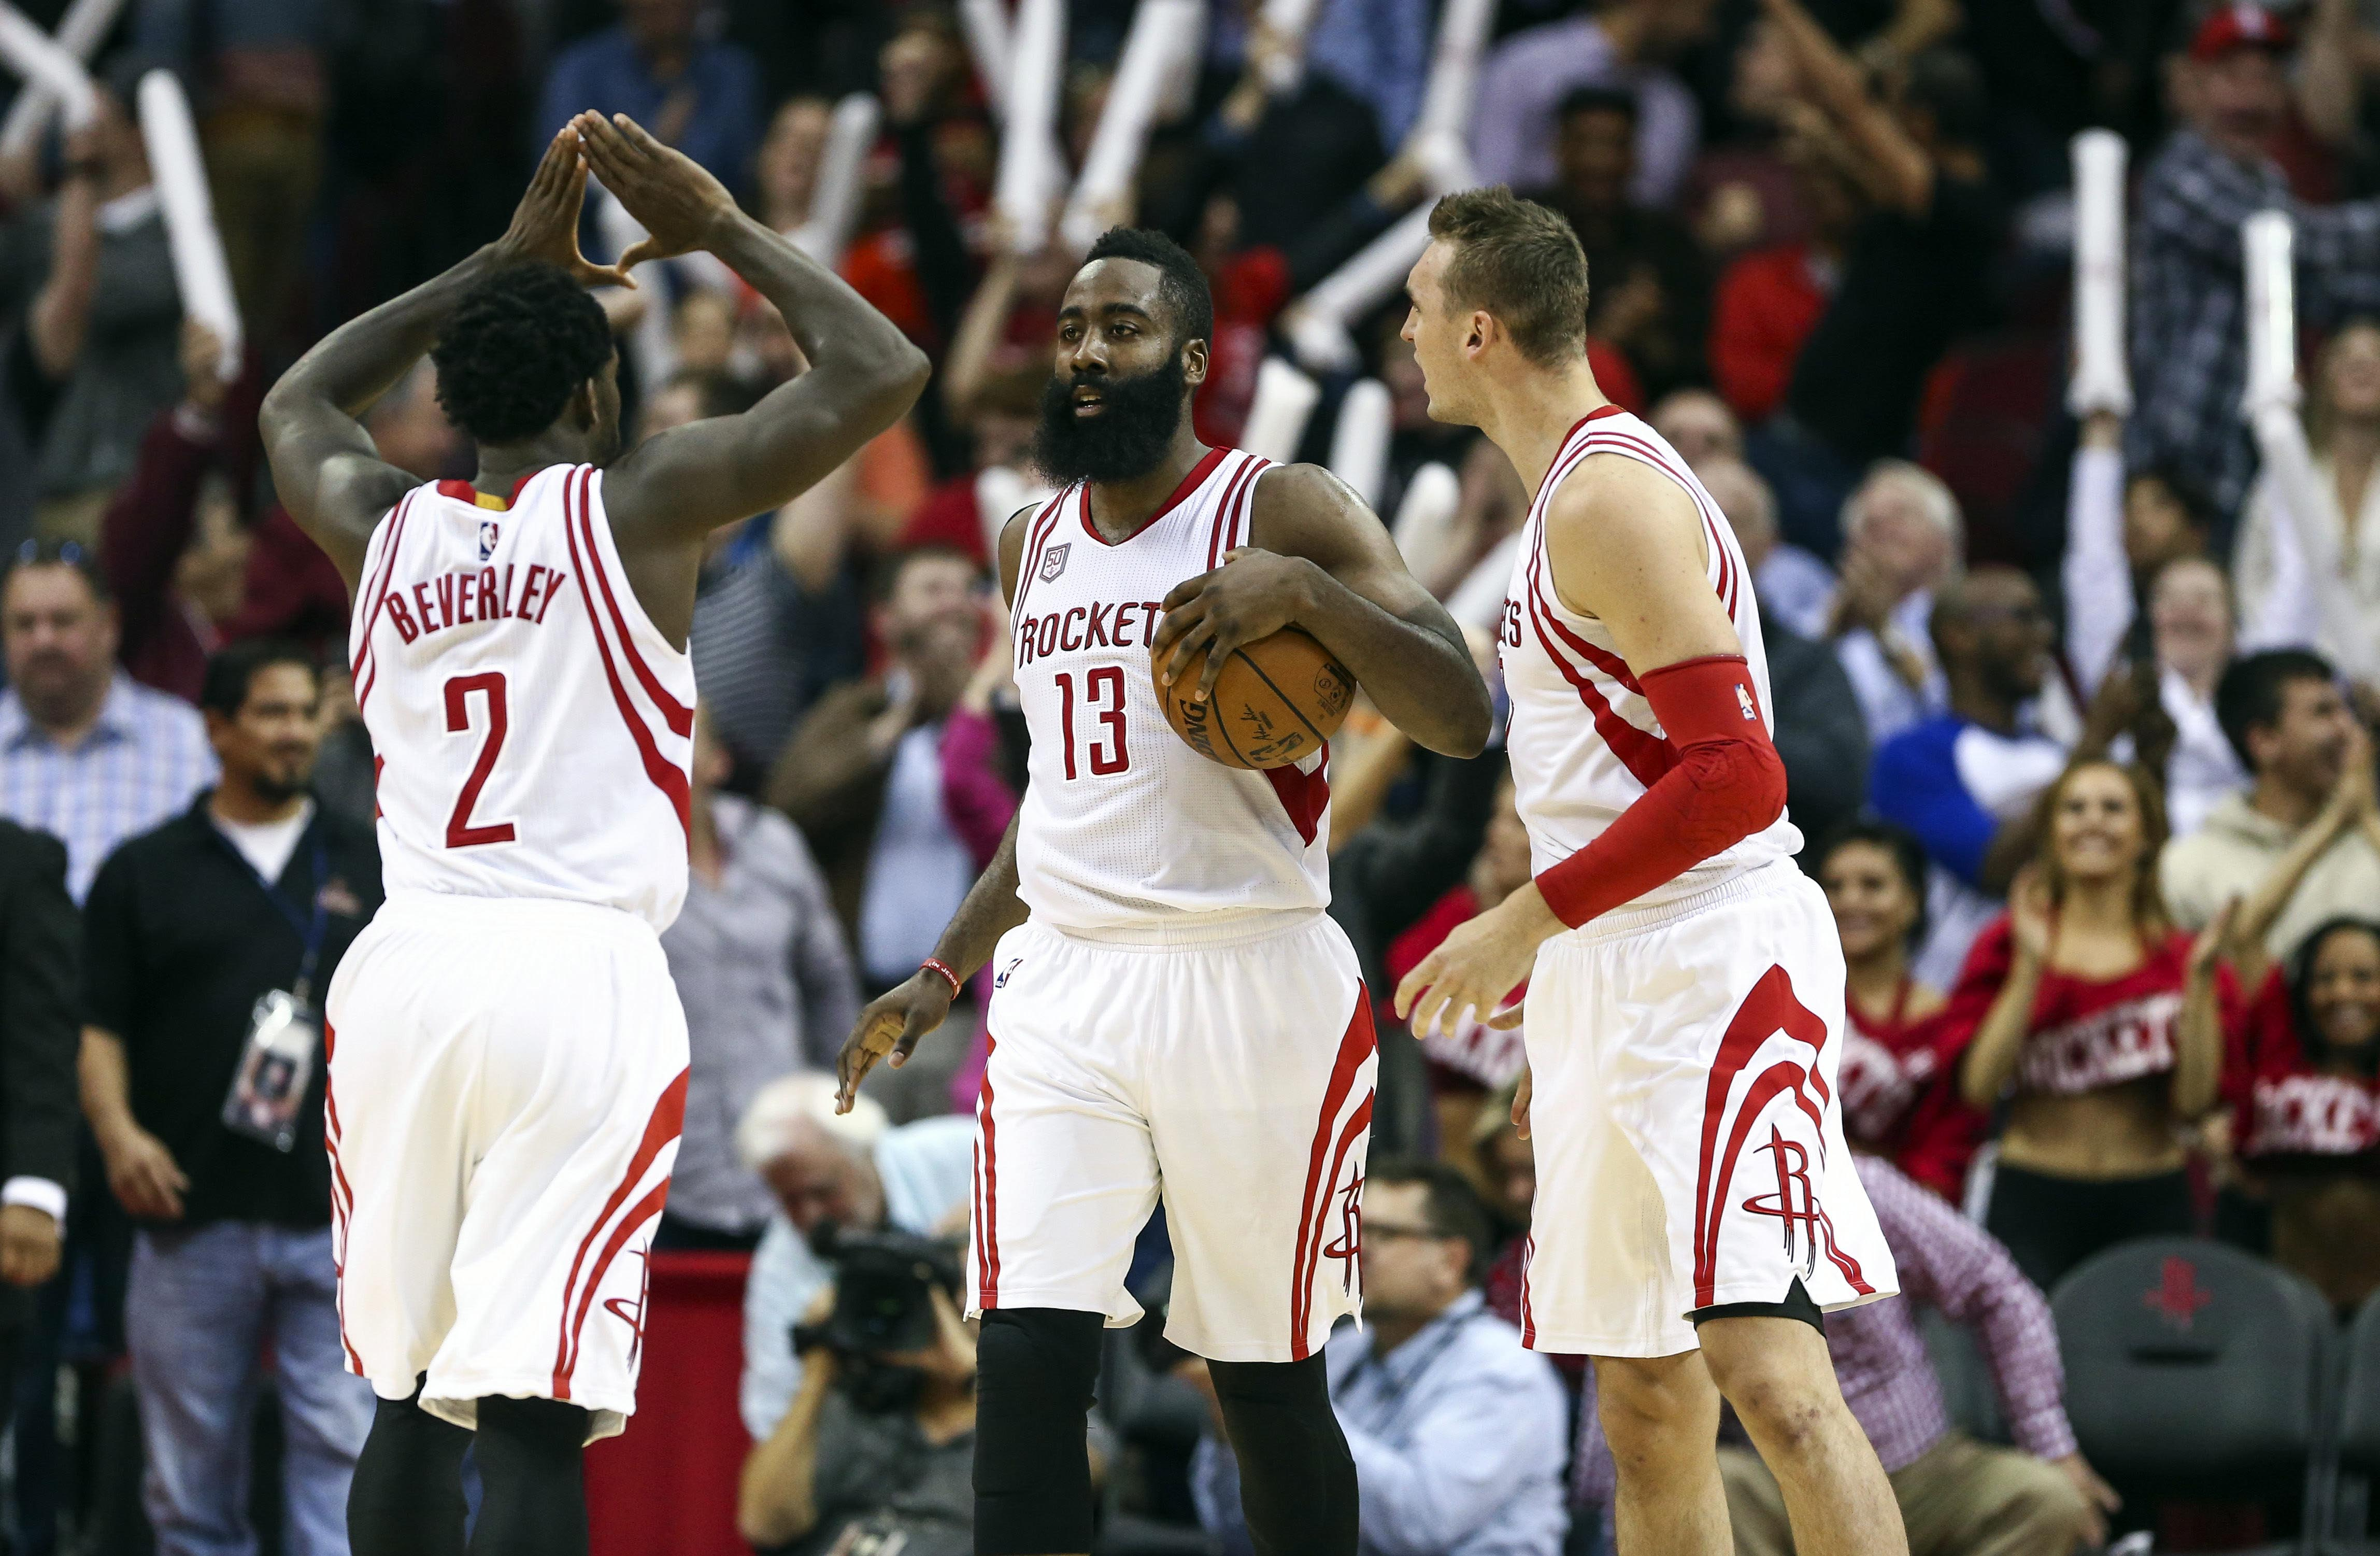 Houston Rockets: Comparing 2015-2016 to 2016-2017